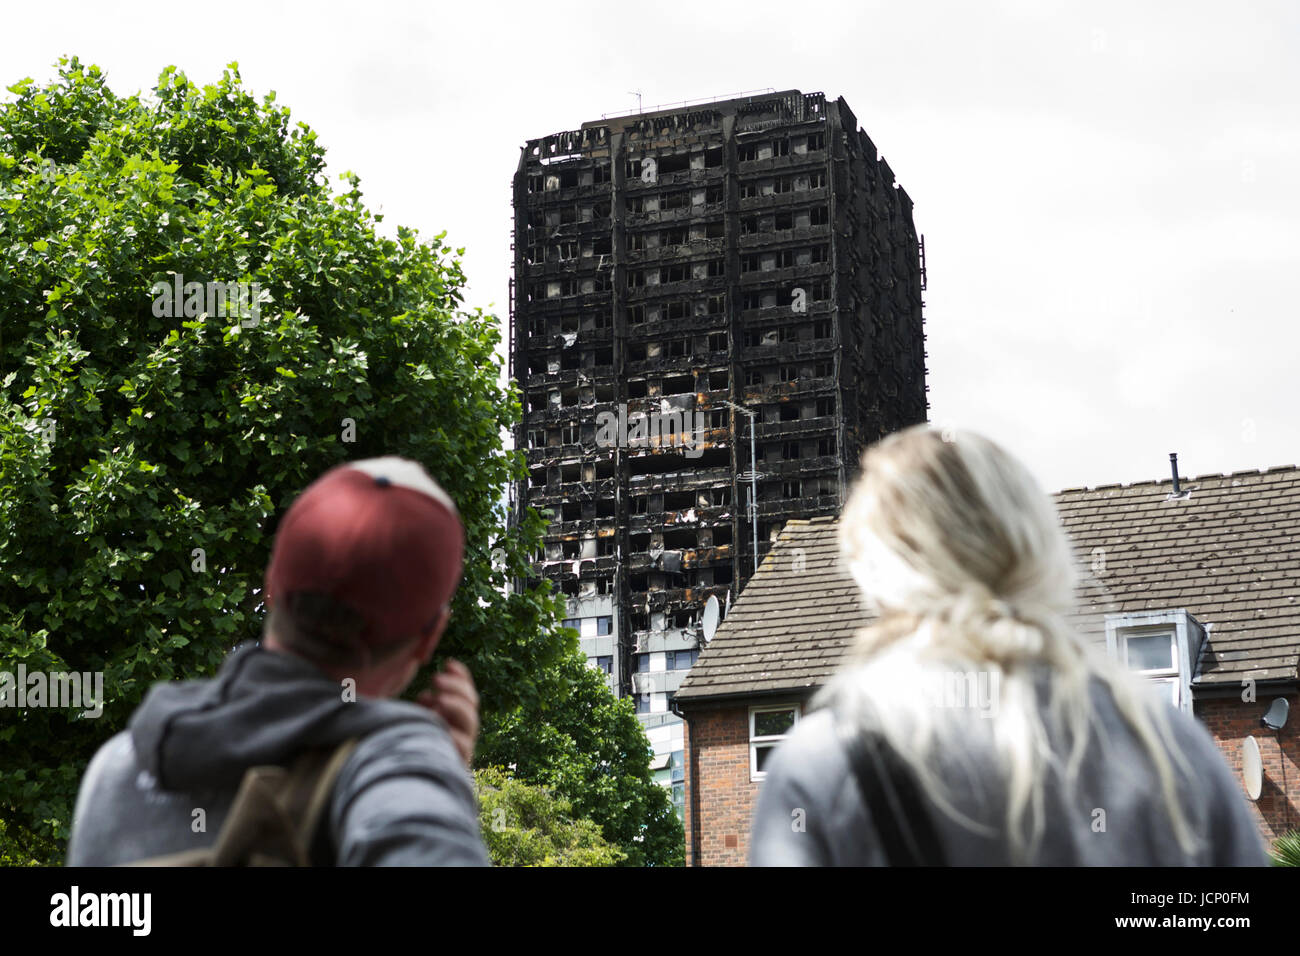 London, UK. 16th June, 2017. The Grenfell Tower Disaster, in West London. A 24 story residential building destroyed - Stock Image